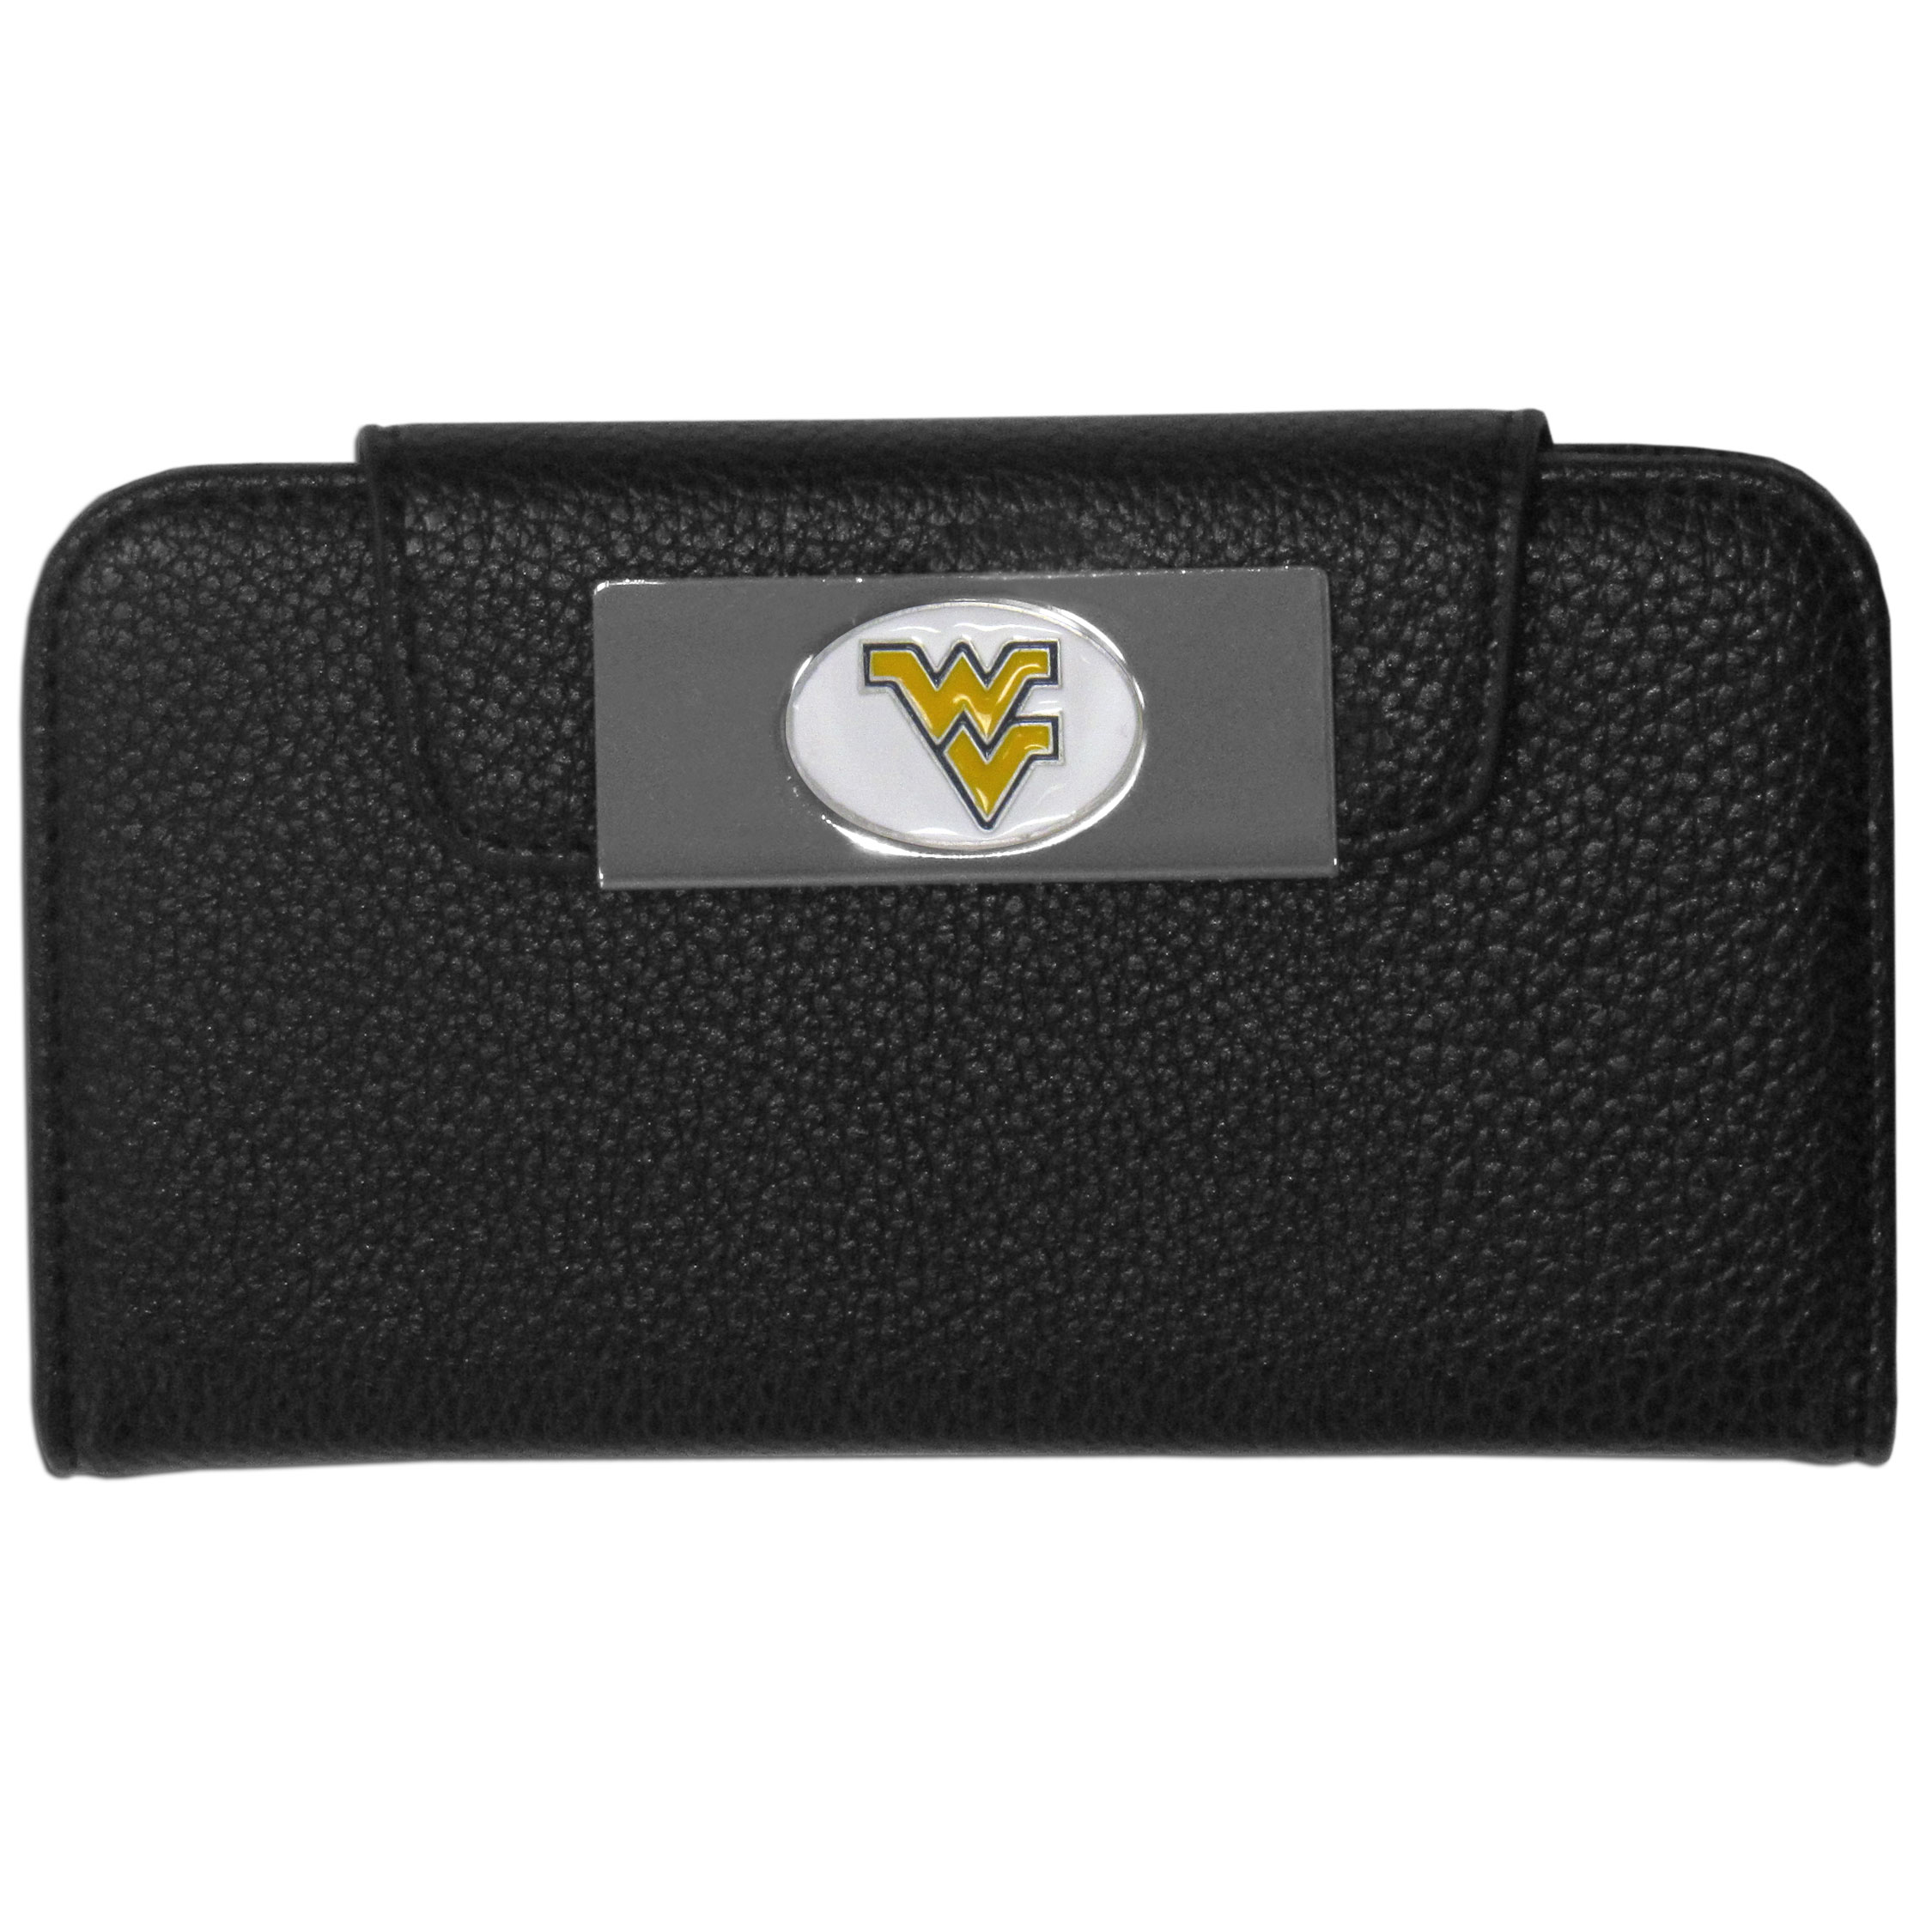 W. Virginia Mountaineers Samsung Galaxy S4 Wallet Case - This new & wildly popular case is ideal for those who like to travel light! The stylish case has an inner hard shell that securely holds your phone while allowing complete access to the phone's functionality. The flip cover has slots for credit cards, business cards and identification. The magnetic flip cover has a metal W. Virginia Mountaineers emblem on a high polish chrome backing. Fits the Samsung Galaxy S4